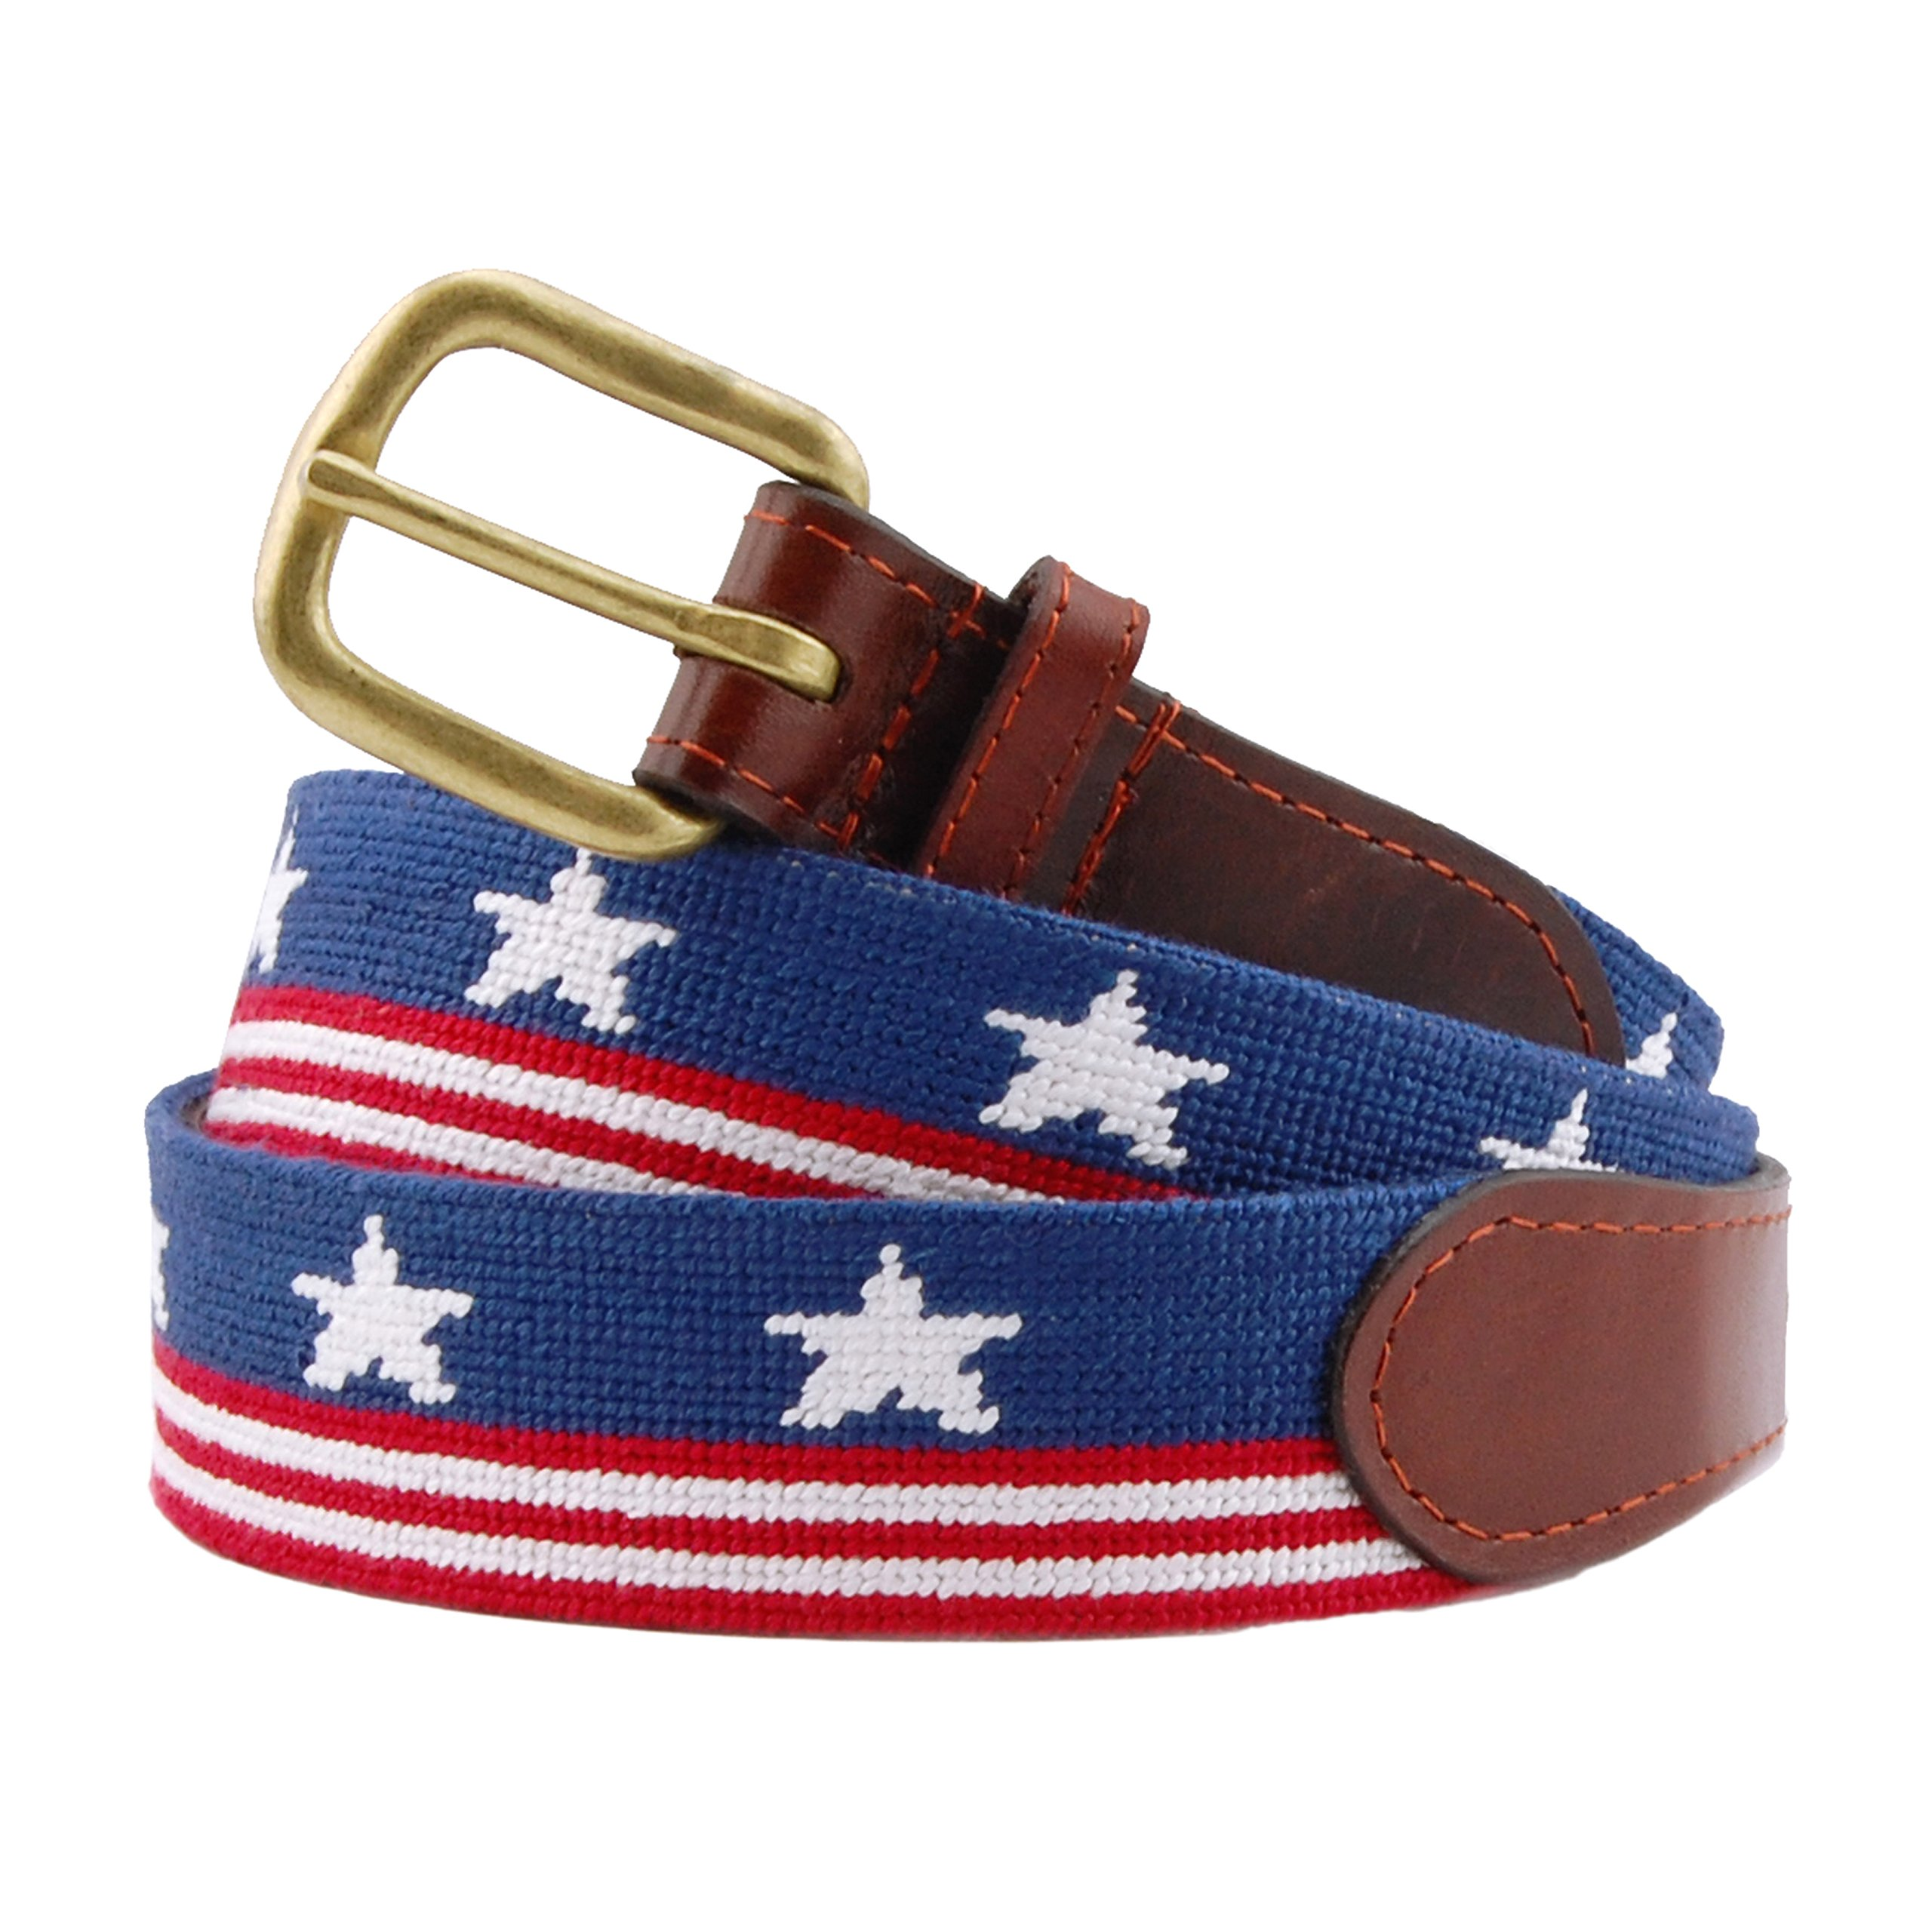 Smathers & Branson Men's Old Glory Needlepoint Belt 34 Red White and blue